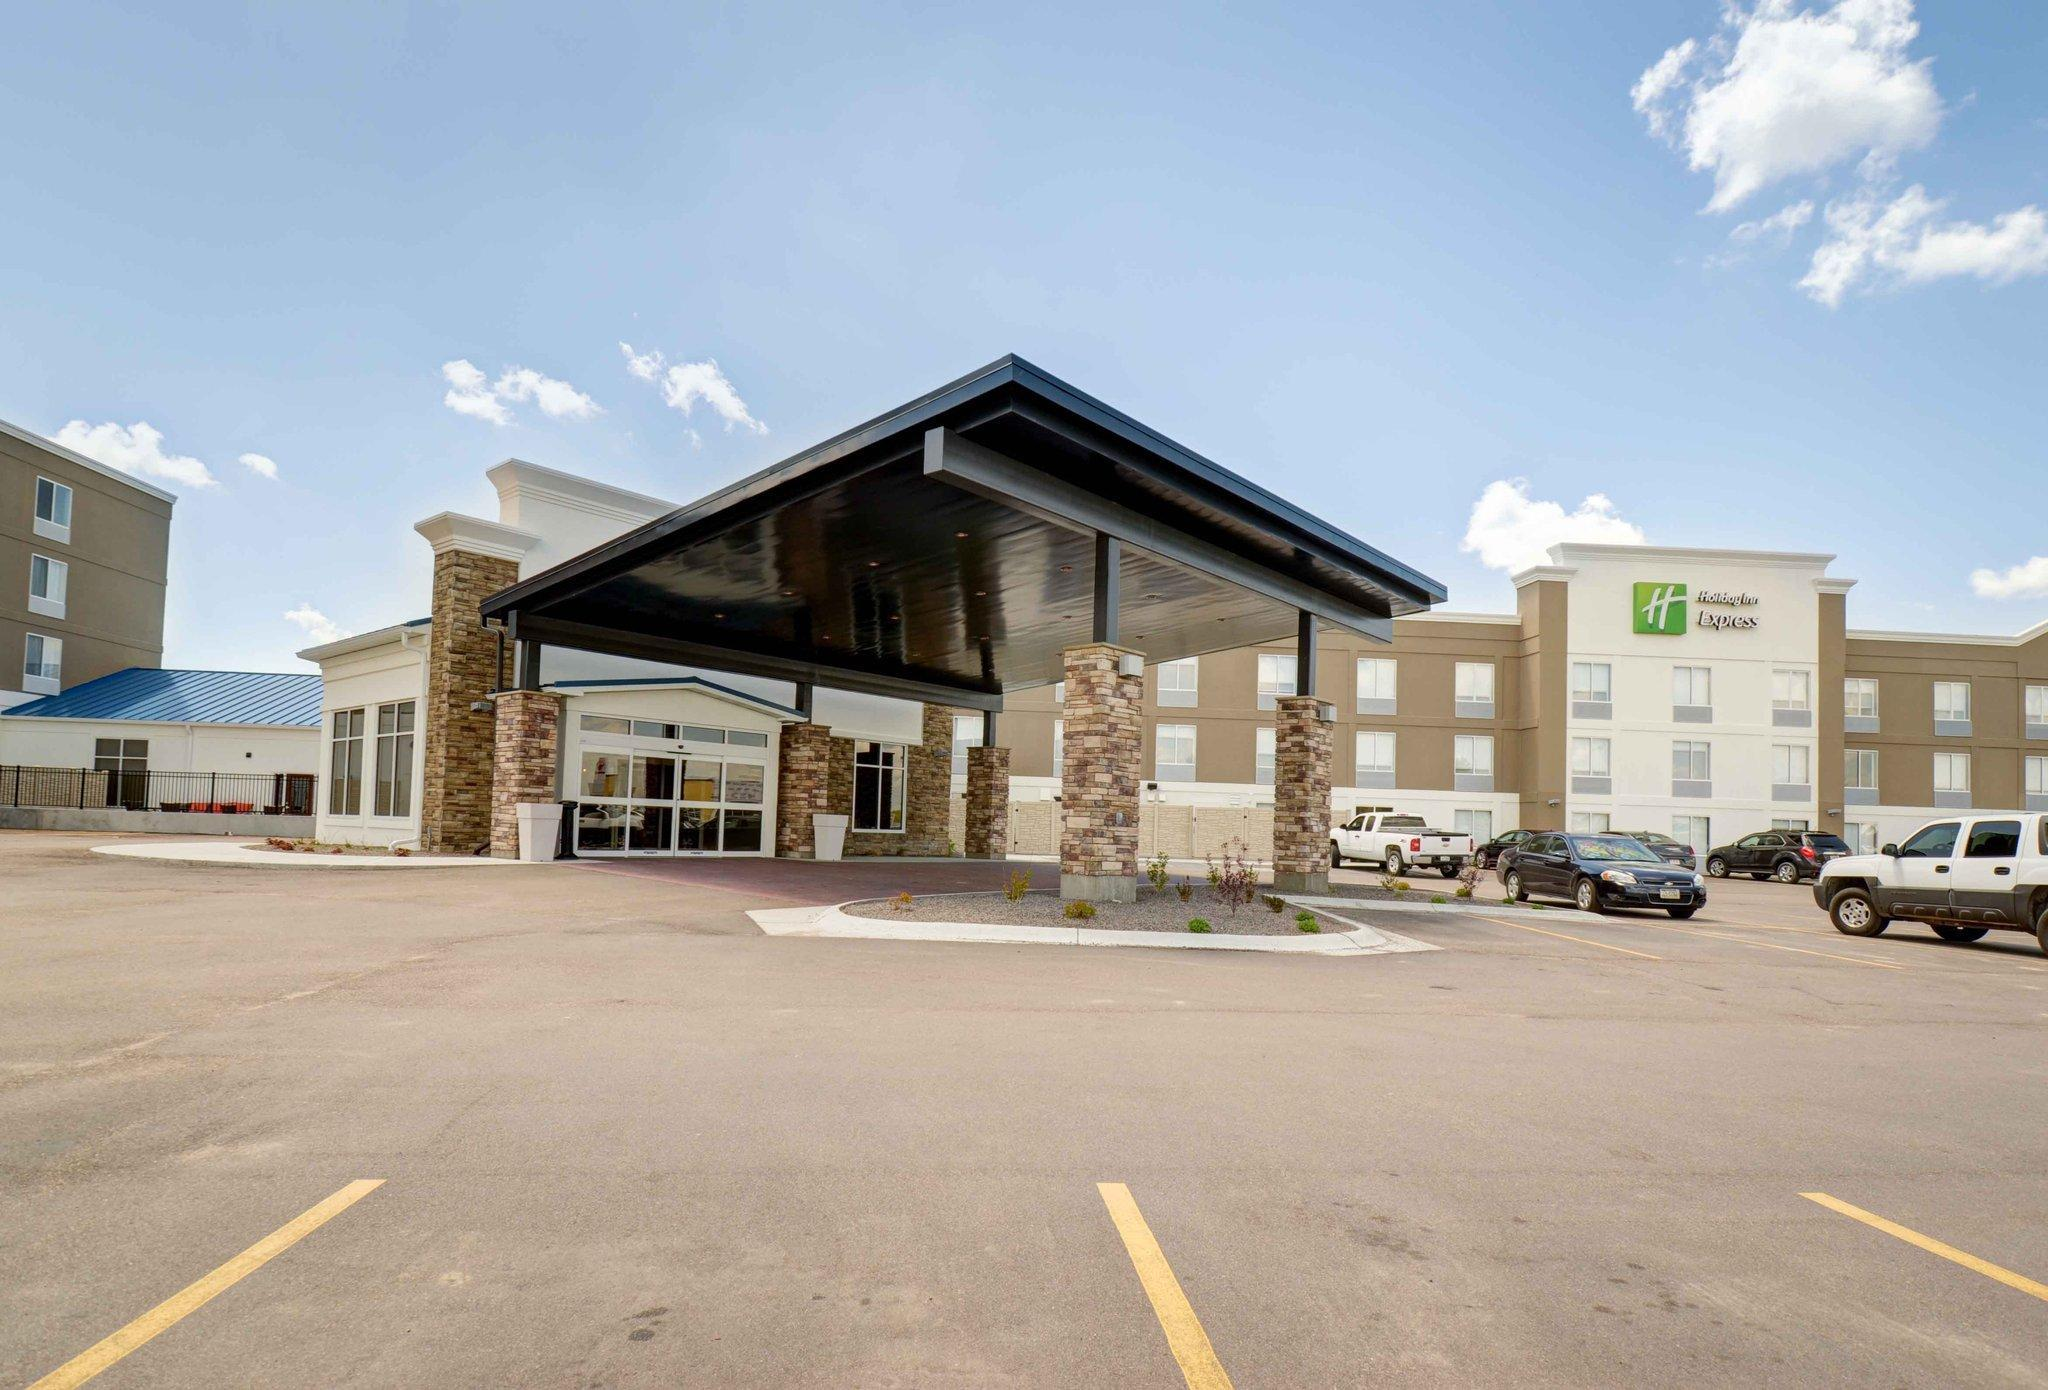 Holiday Inn Express Hotel And Suites North Platte